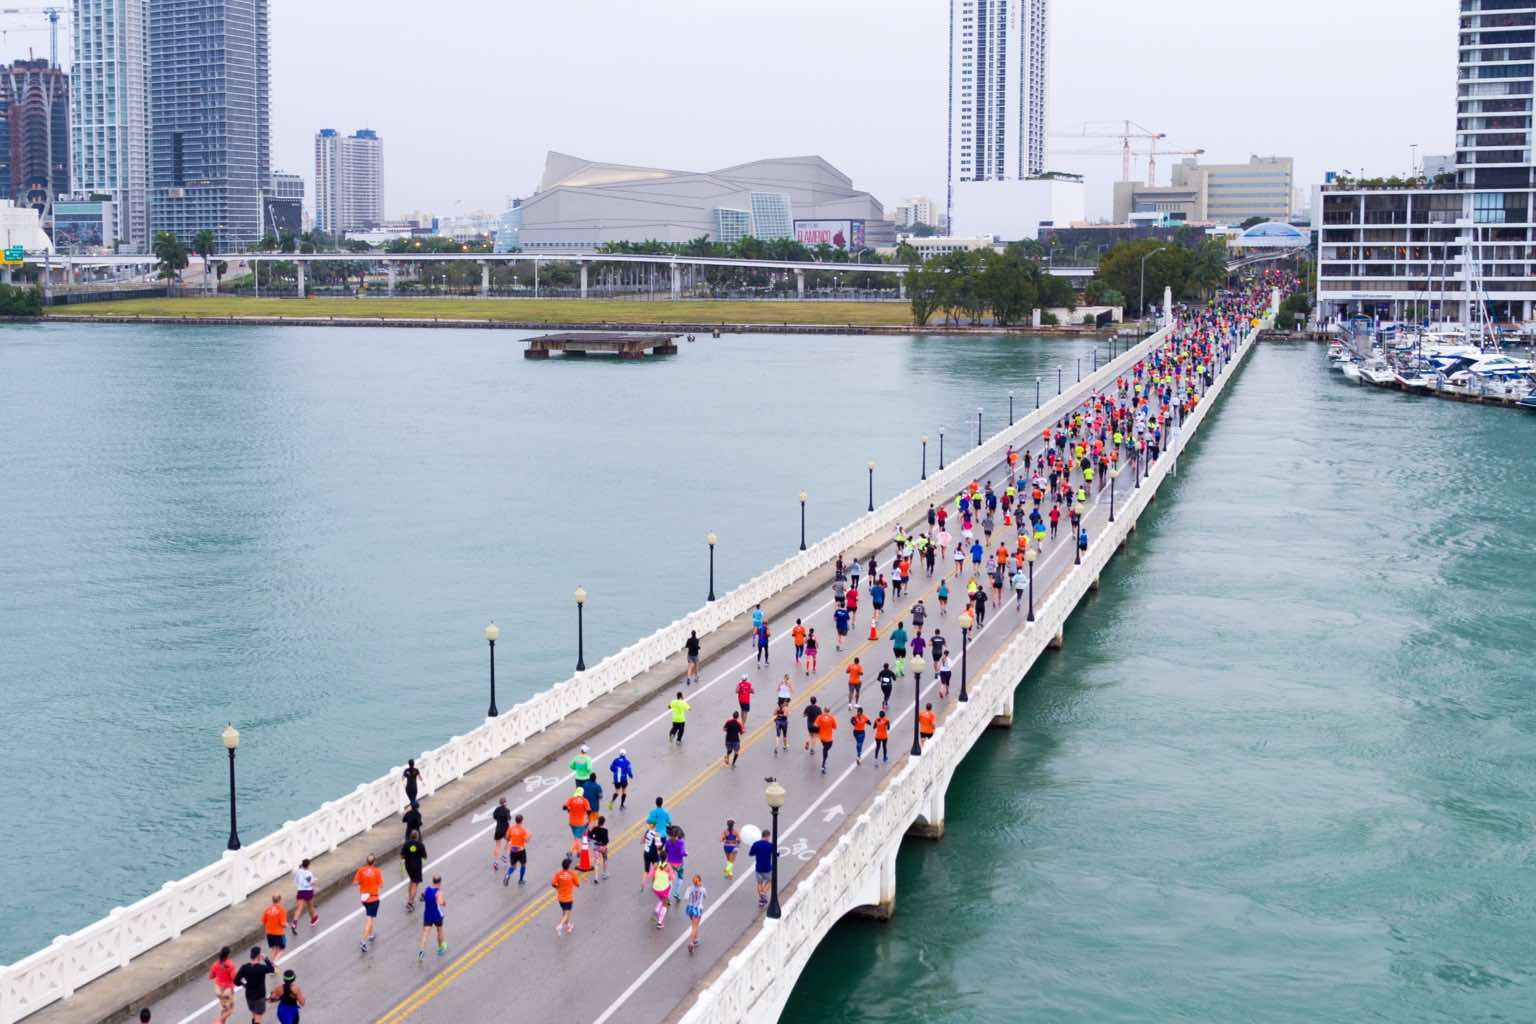 : A crowd of runners running across a bridge over water with city buildings in the background